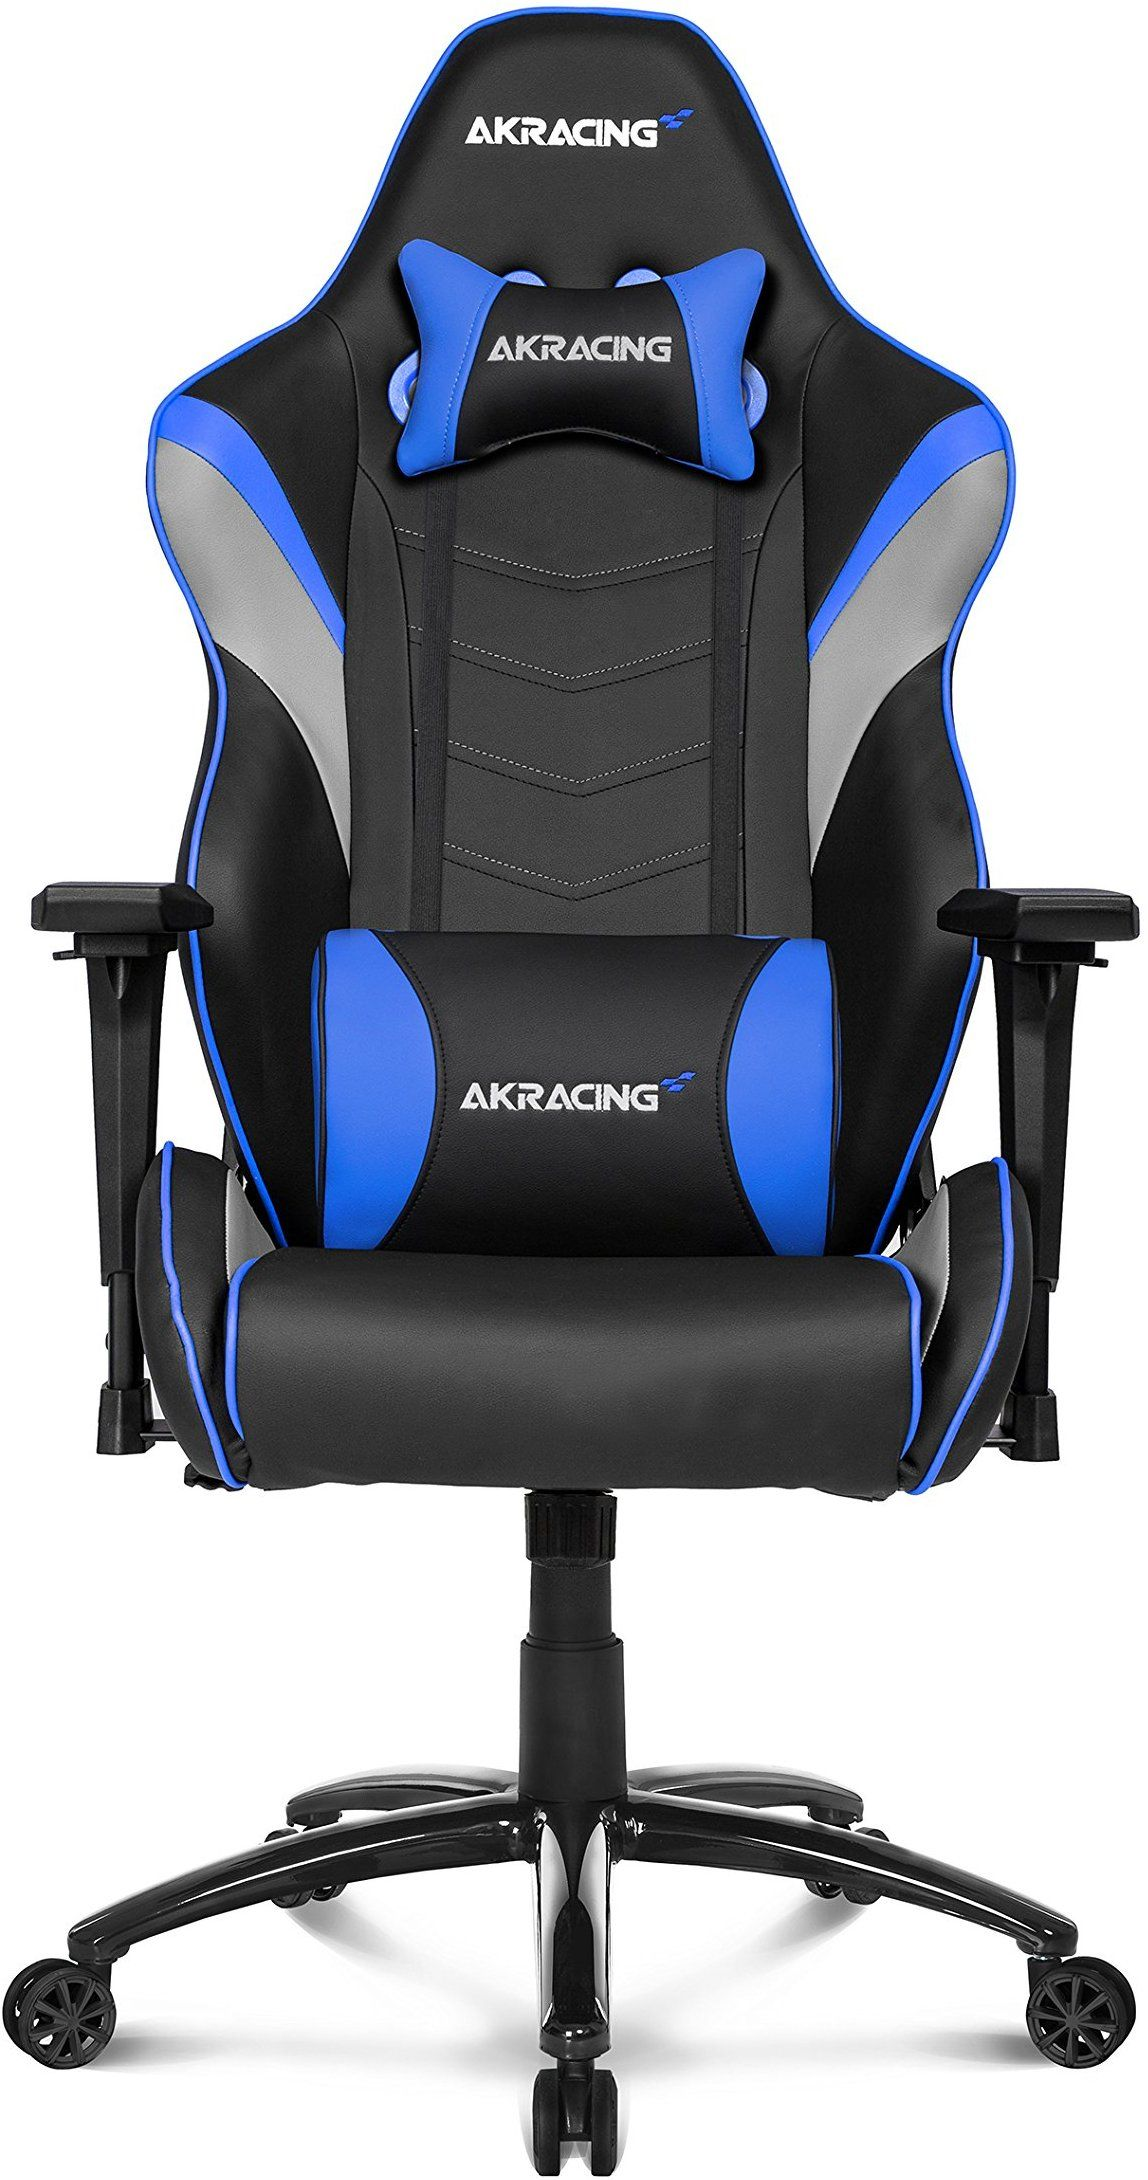 Pin by Kaptain Brayden on Top Gaming Tech Gaming chair